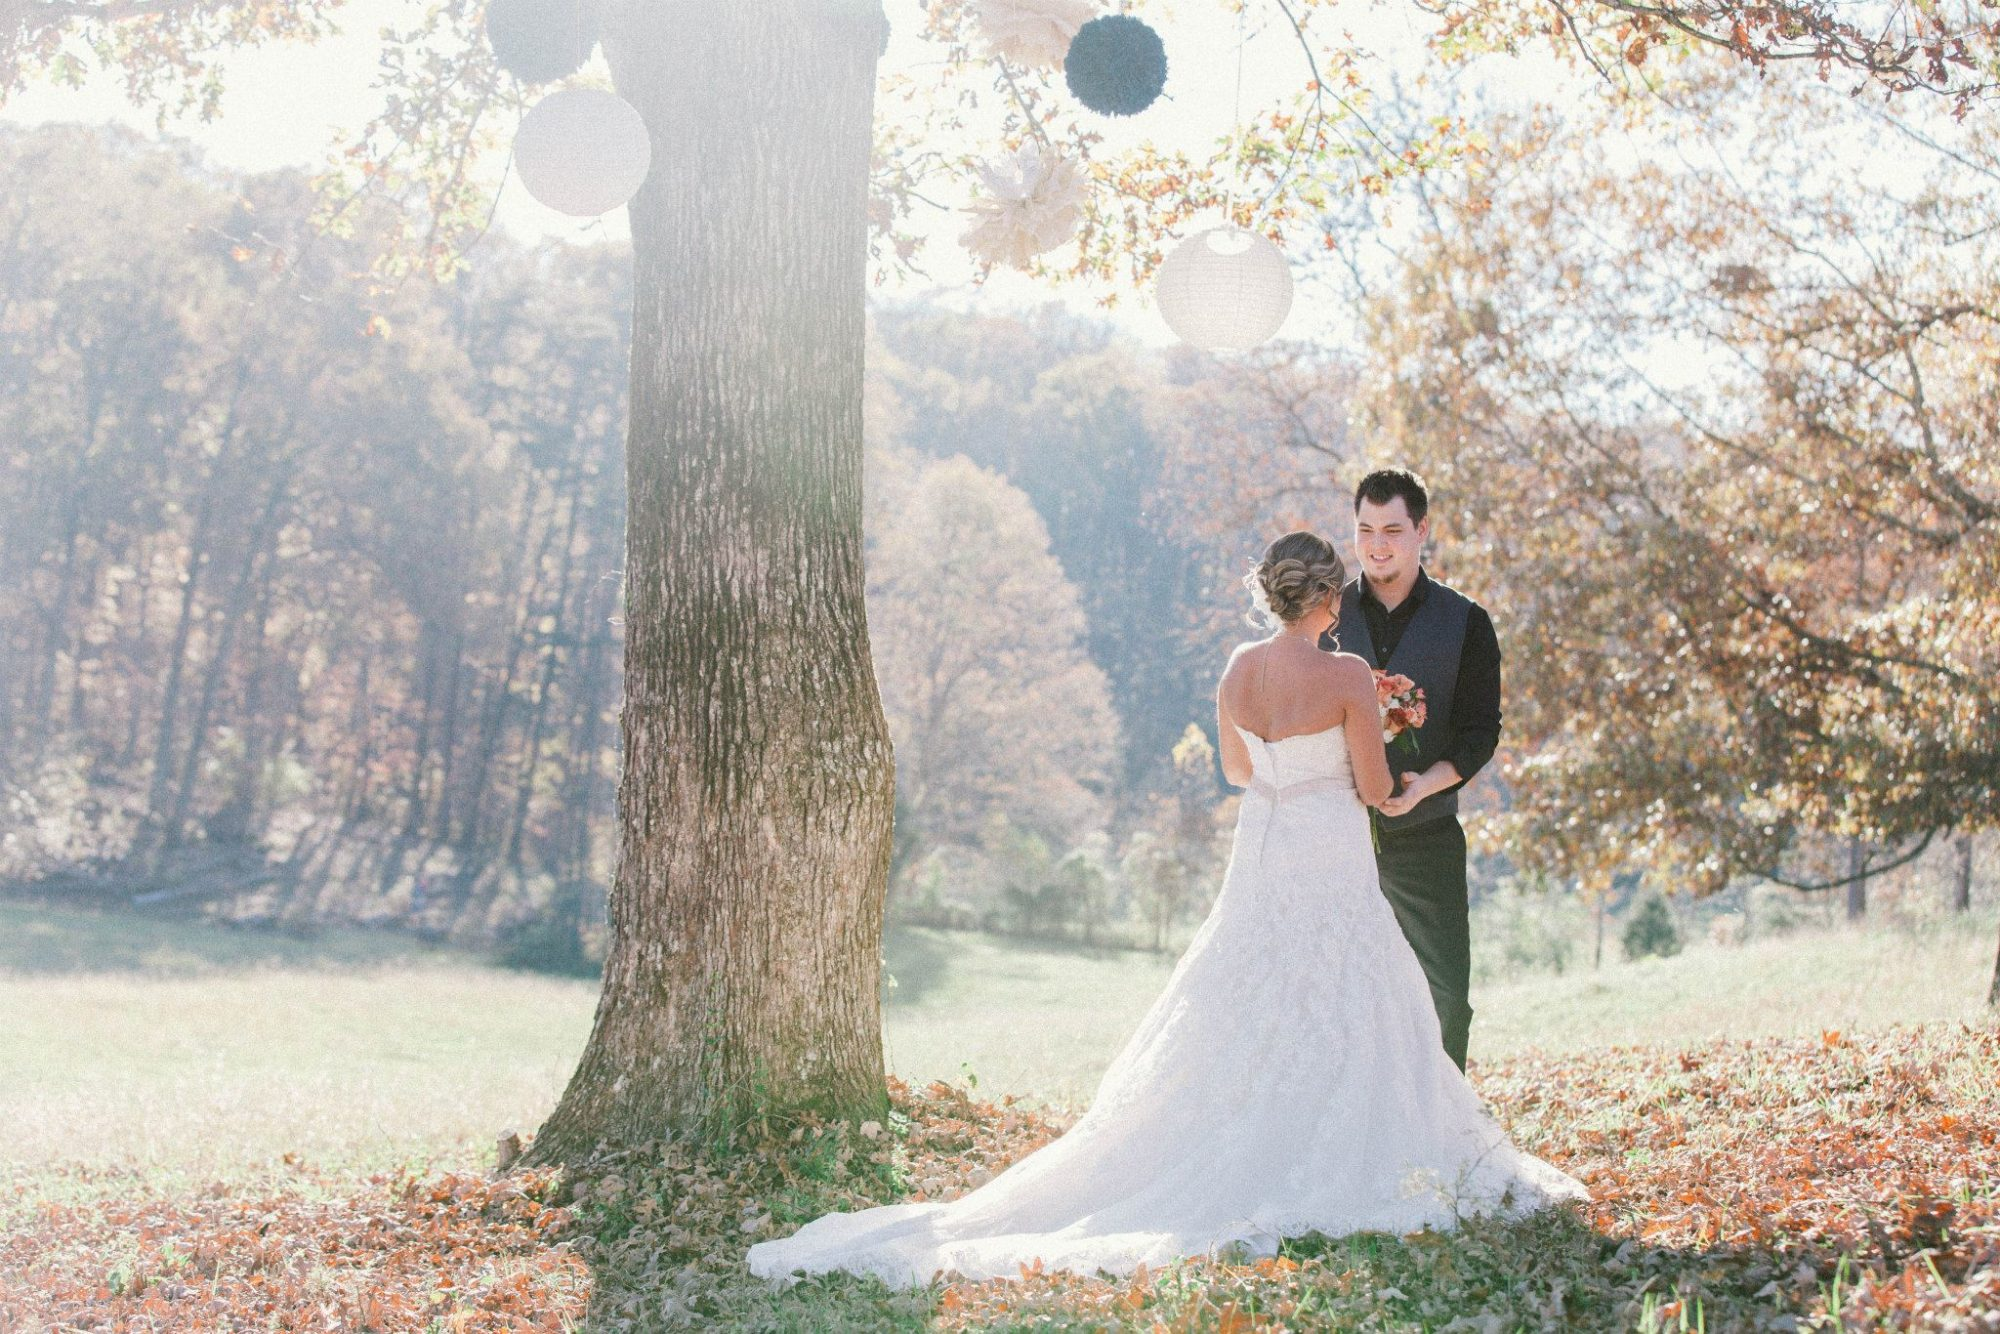 newlyweds under decorated tree